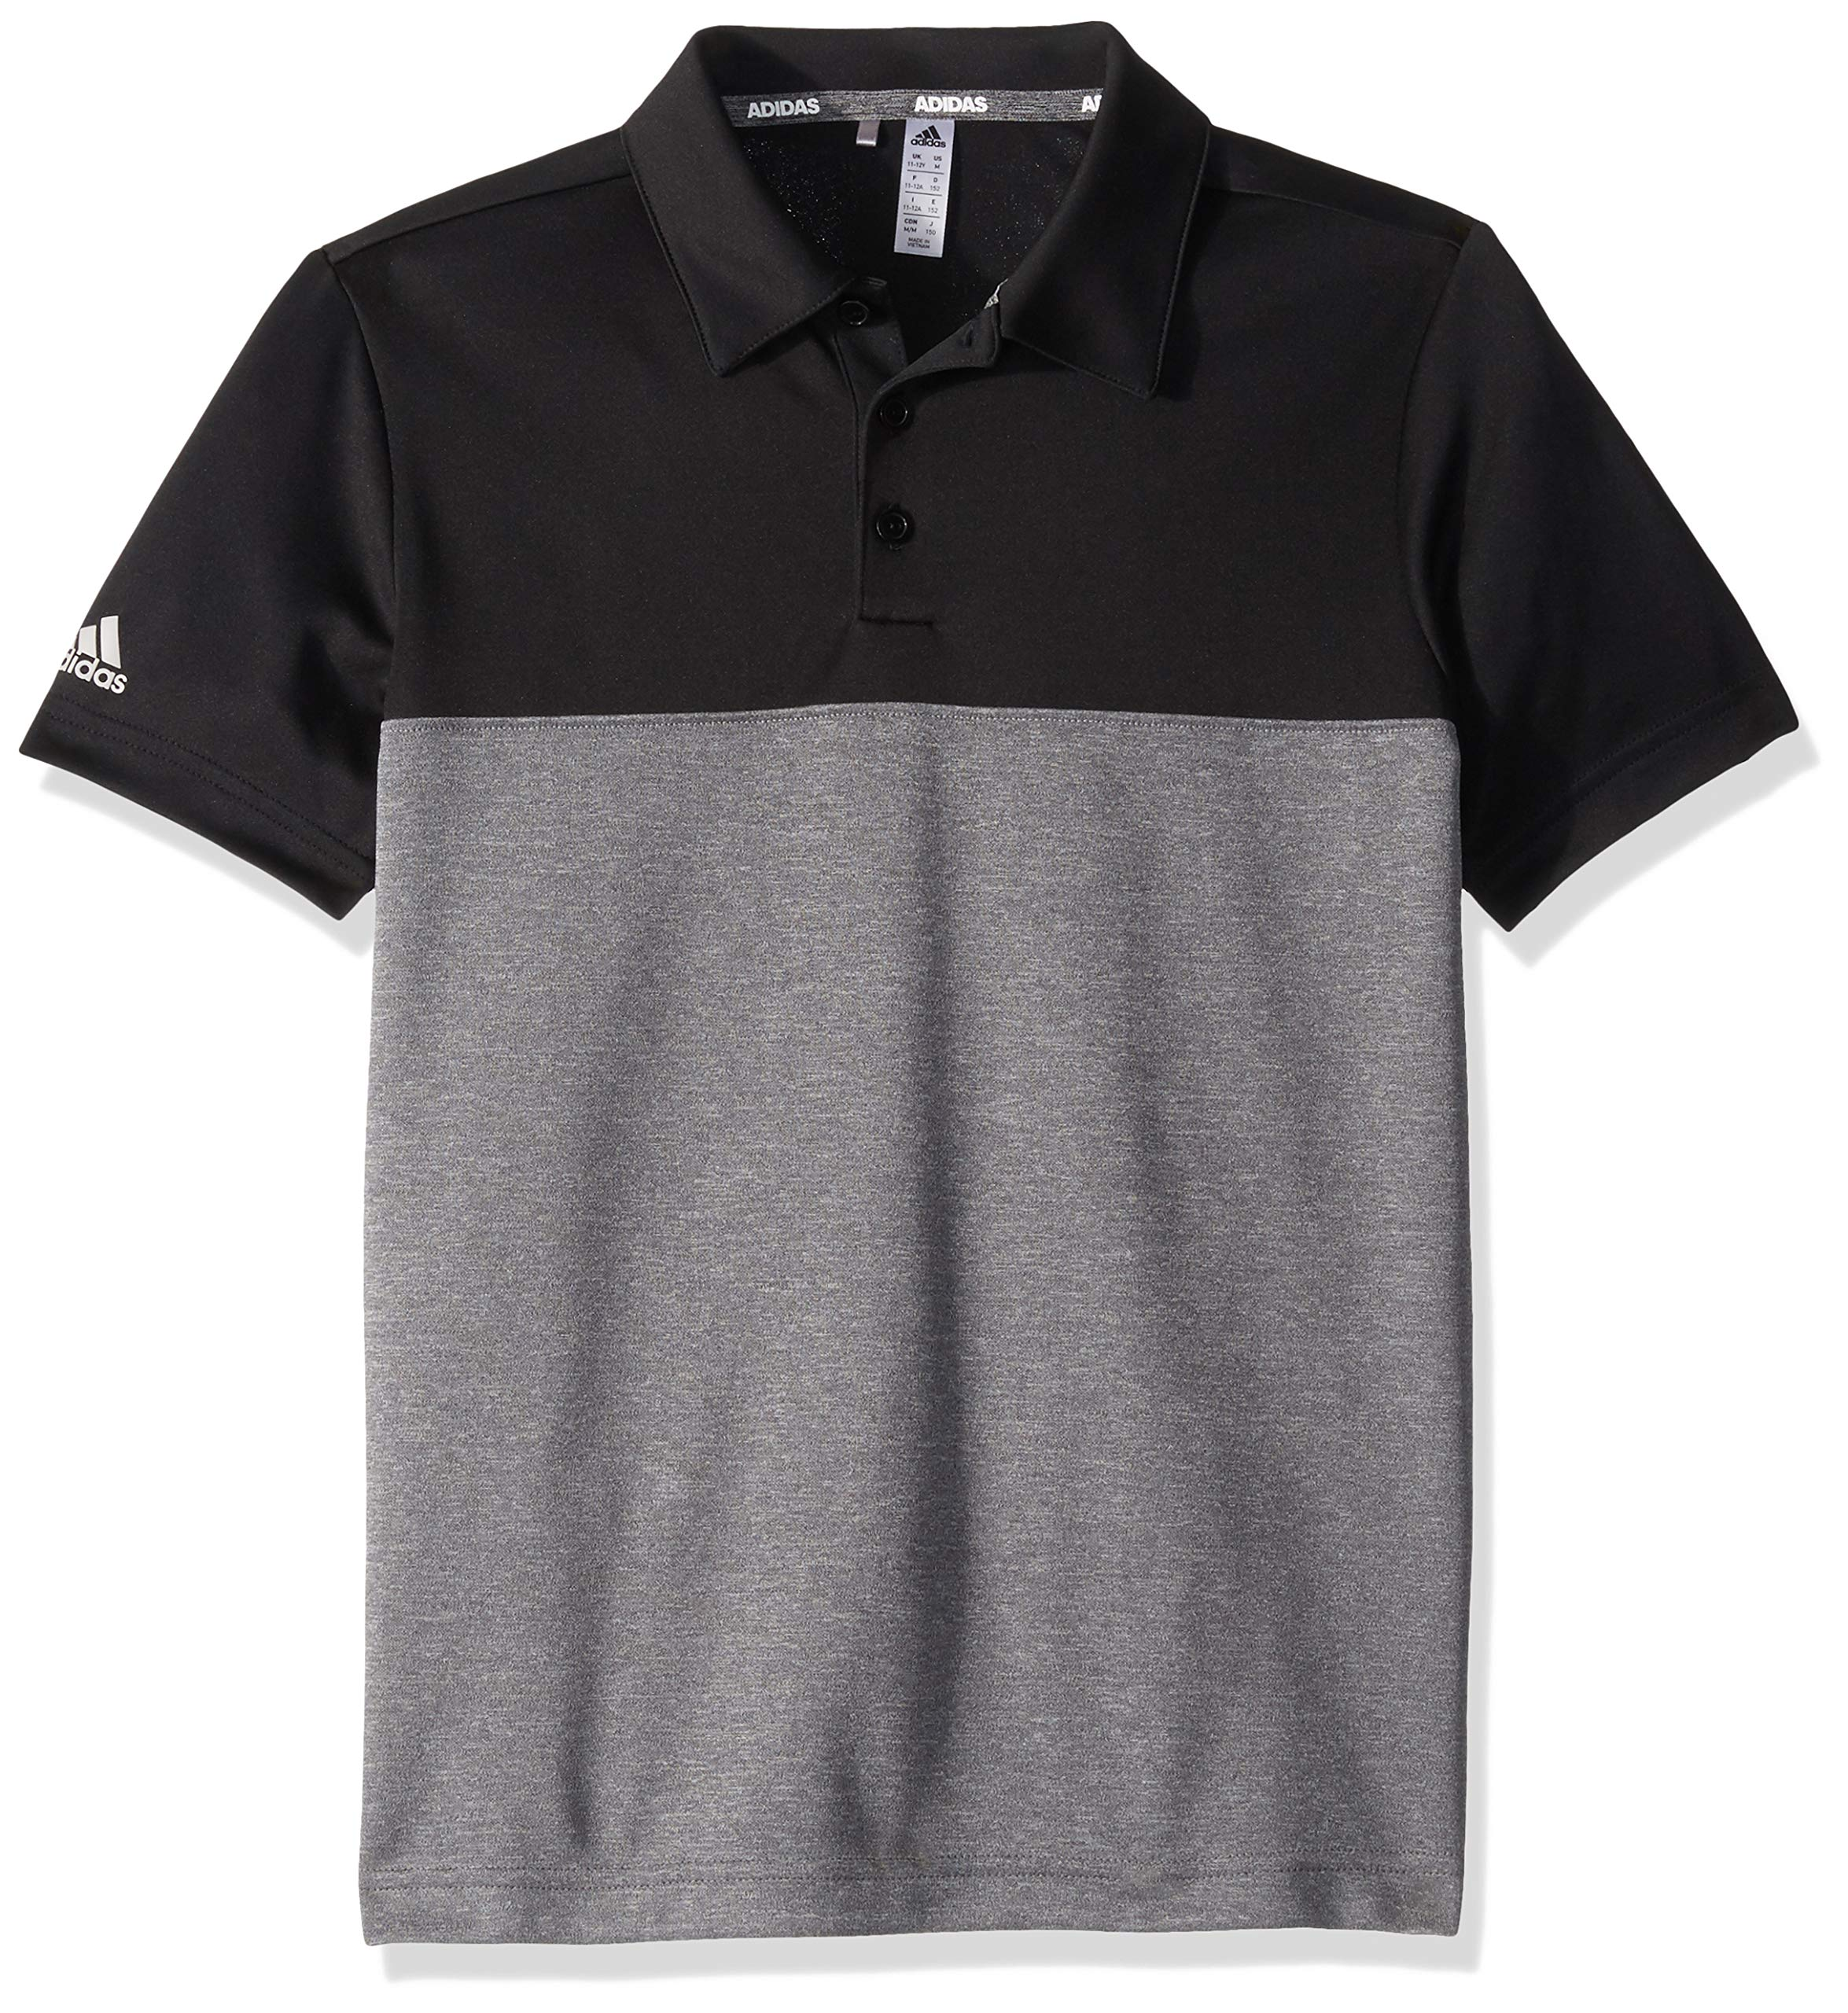 adidas Golf Heathered Color Blocked Polo, Black/Grey Five Heather, Large by adidas